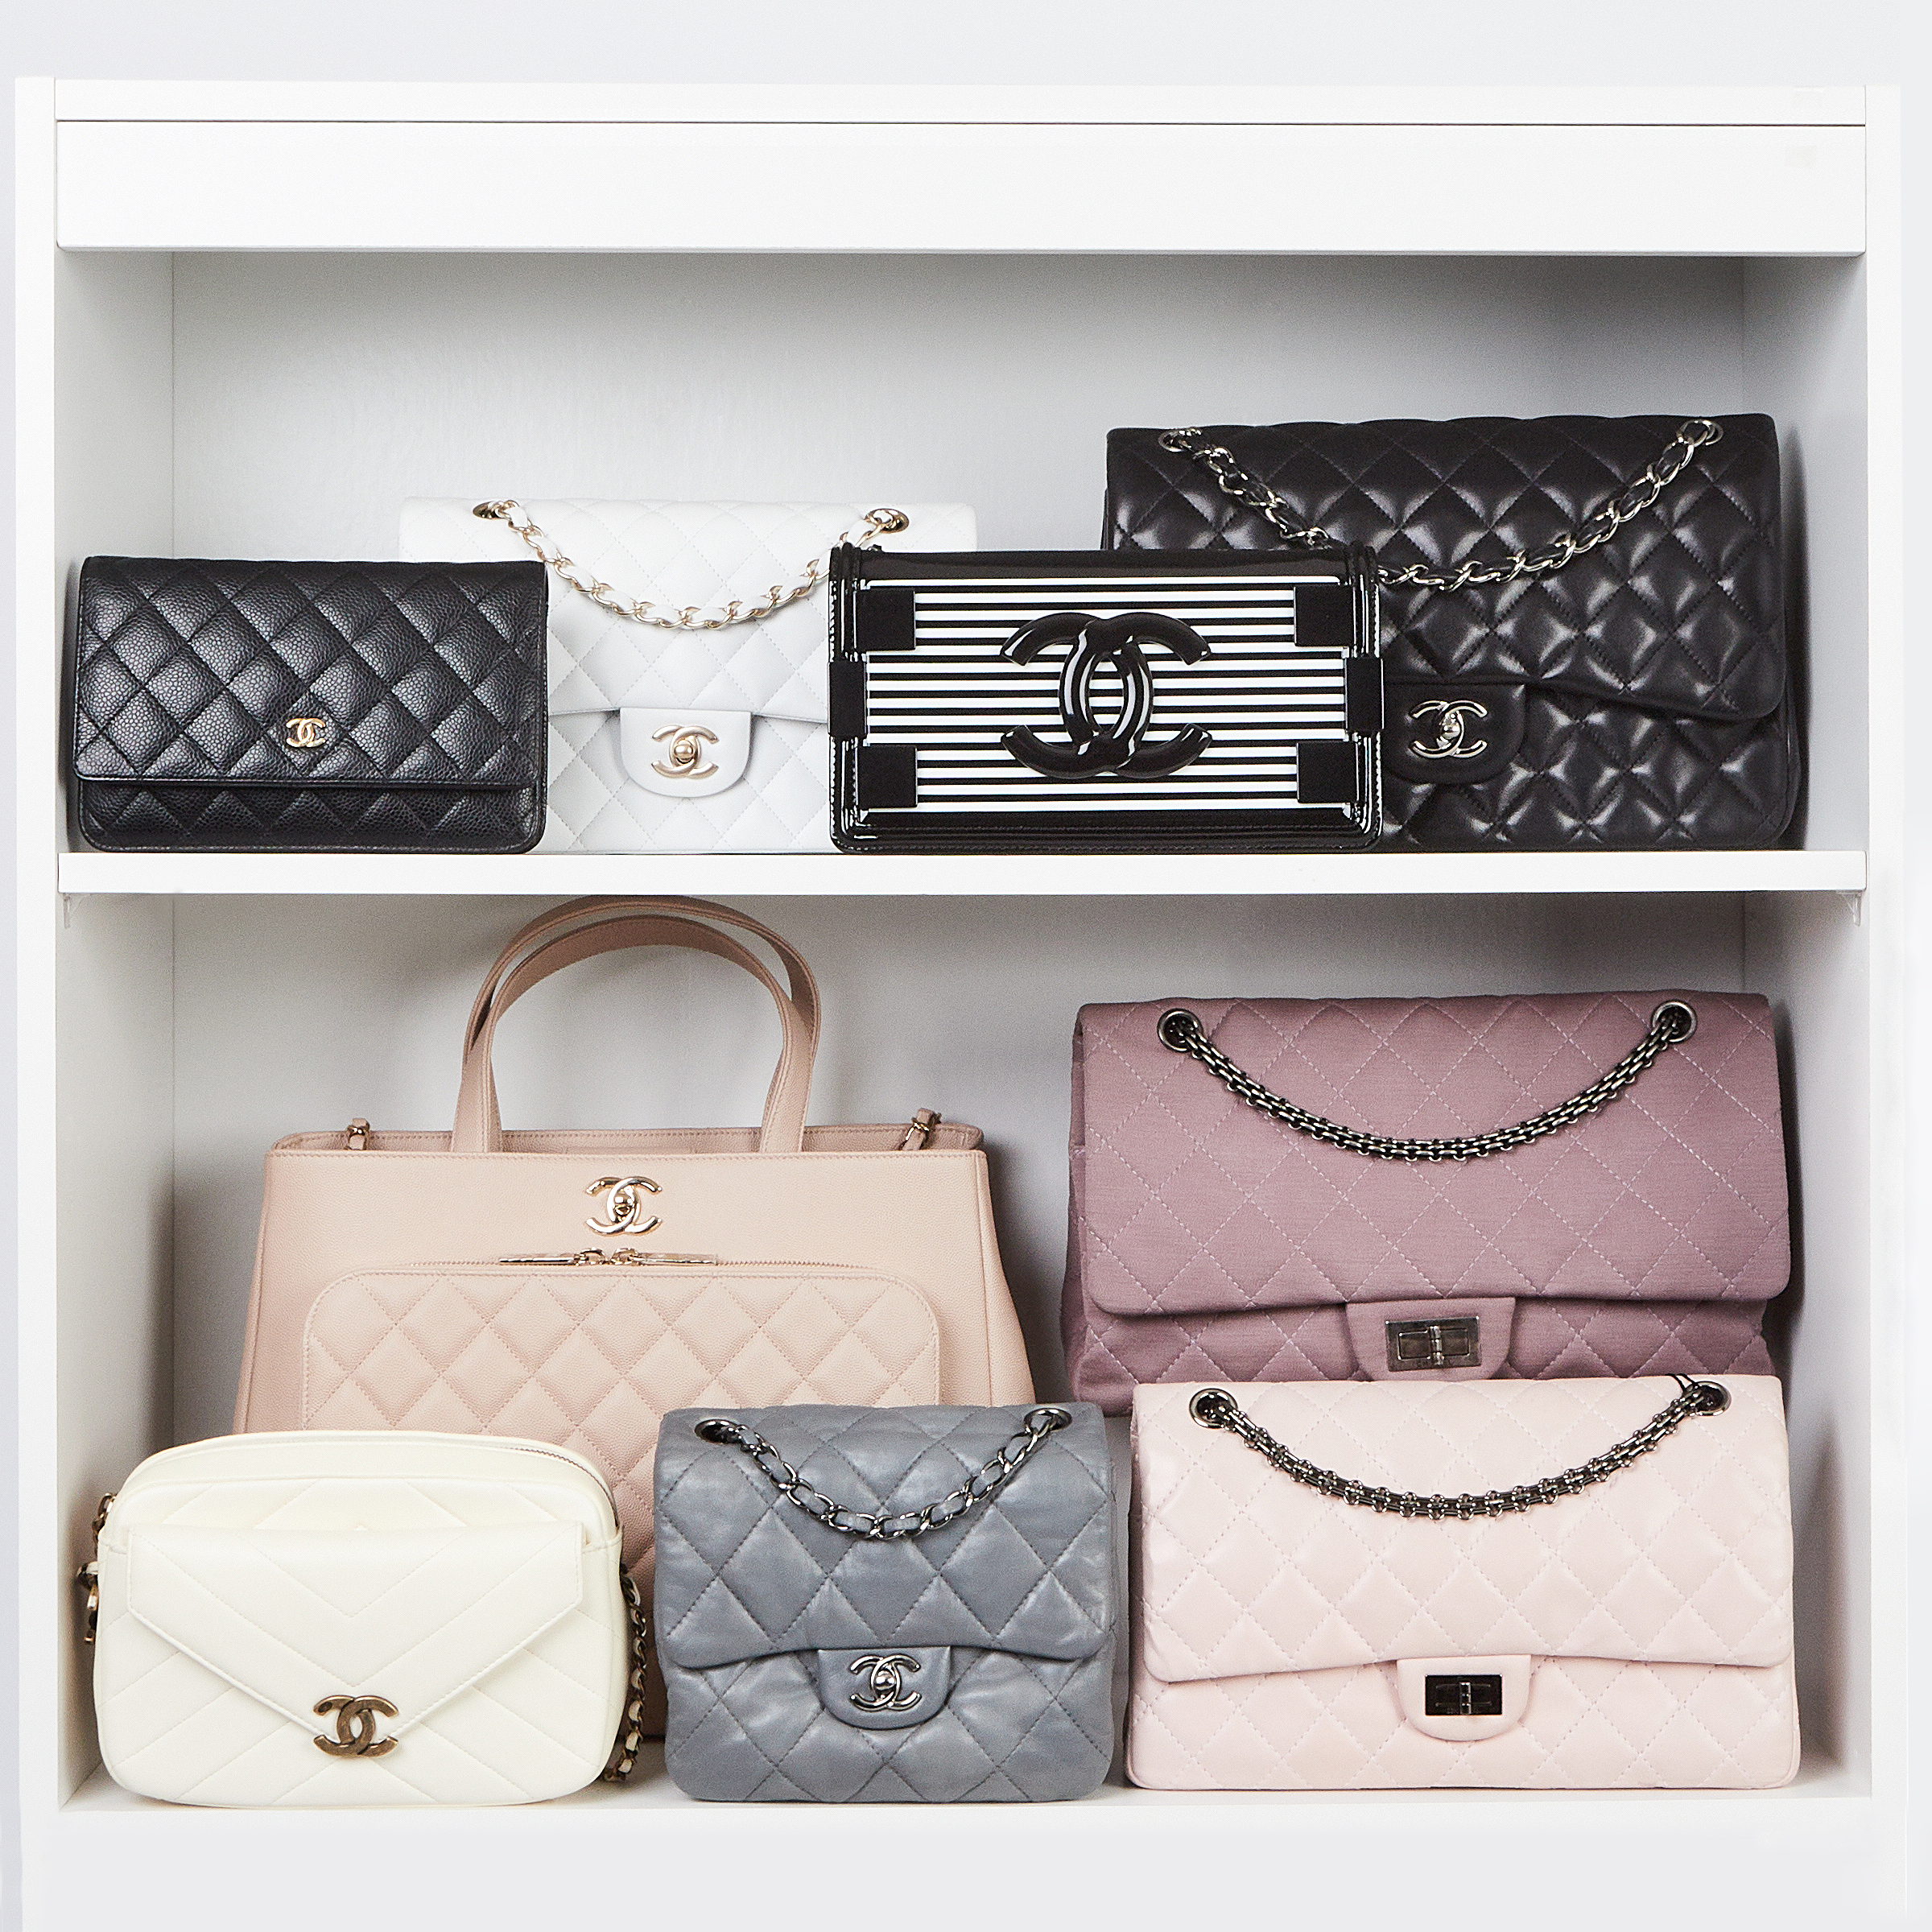 15b8a20e5b5c8c 16 Surprising Things You Can Thank Coco Chanel For - Yoogi's Closet Blog